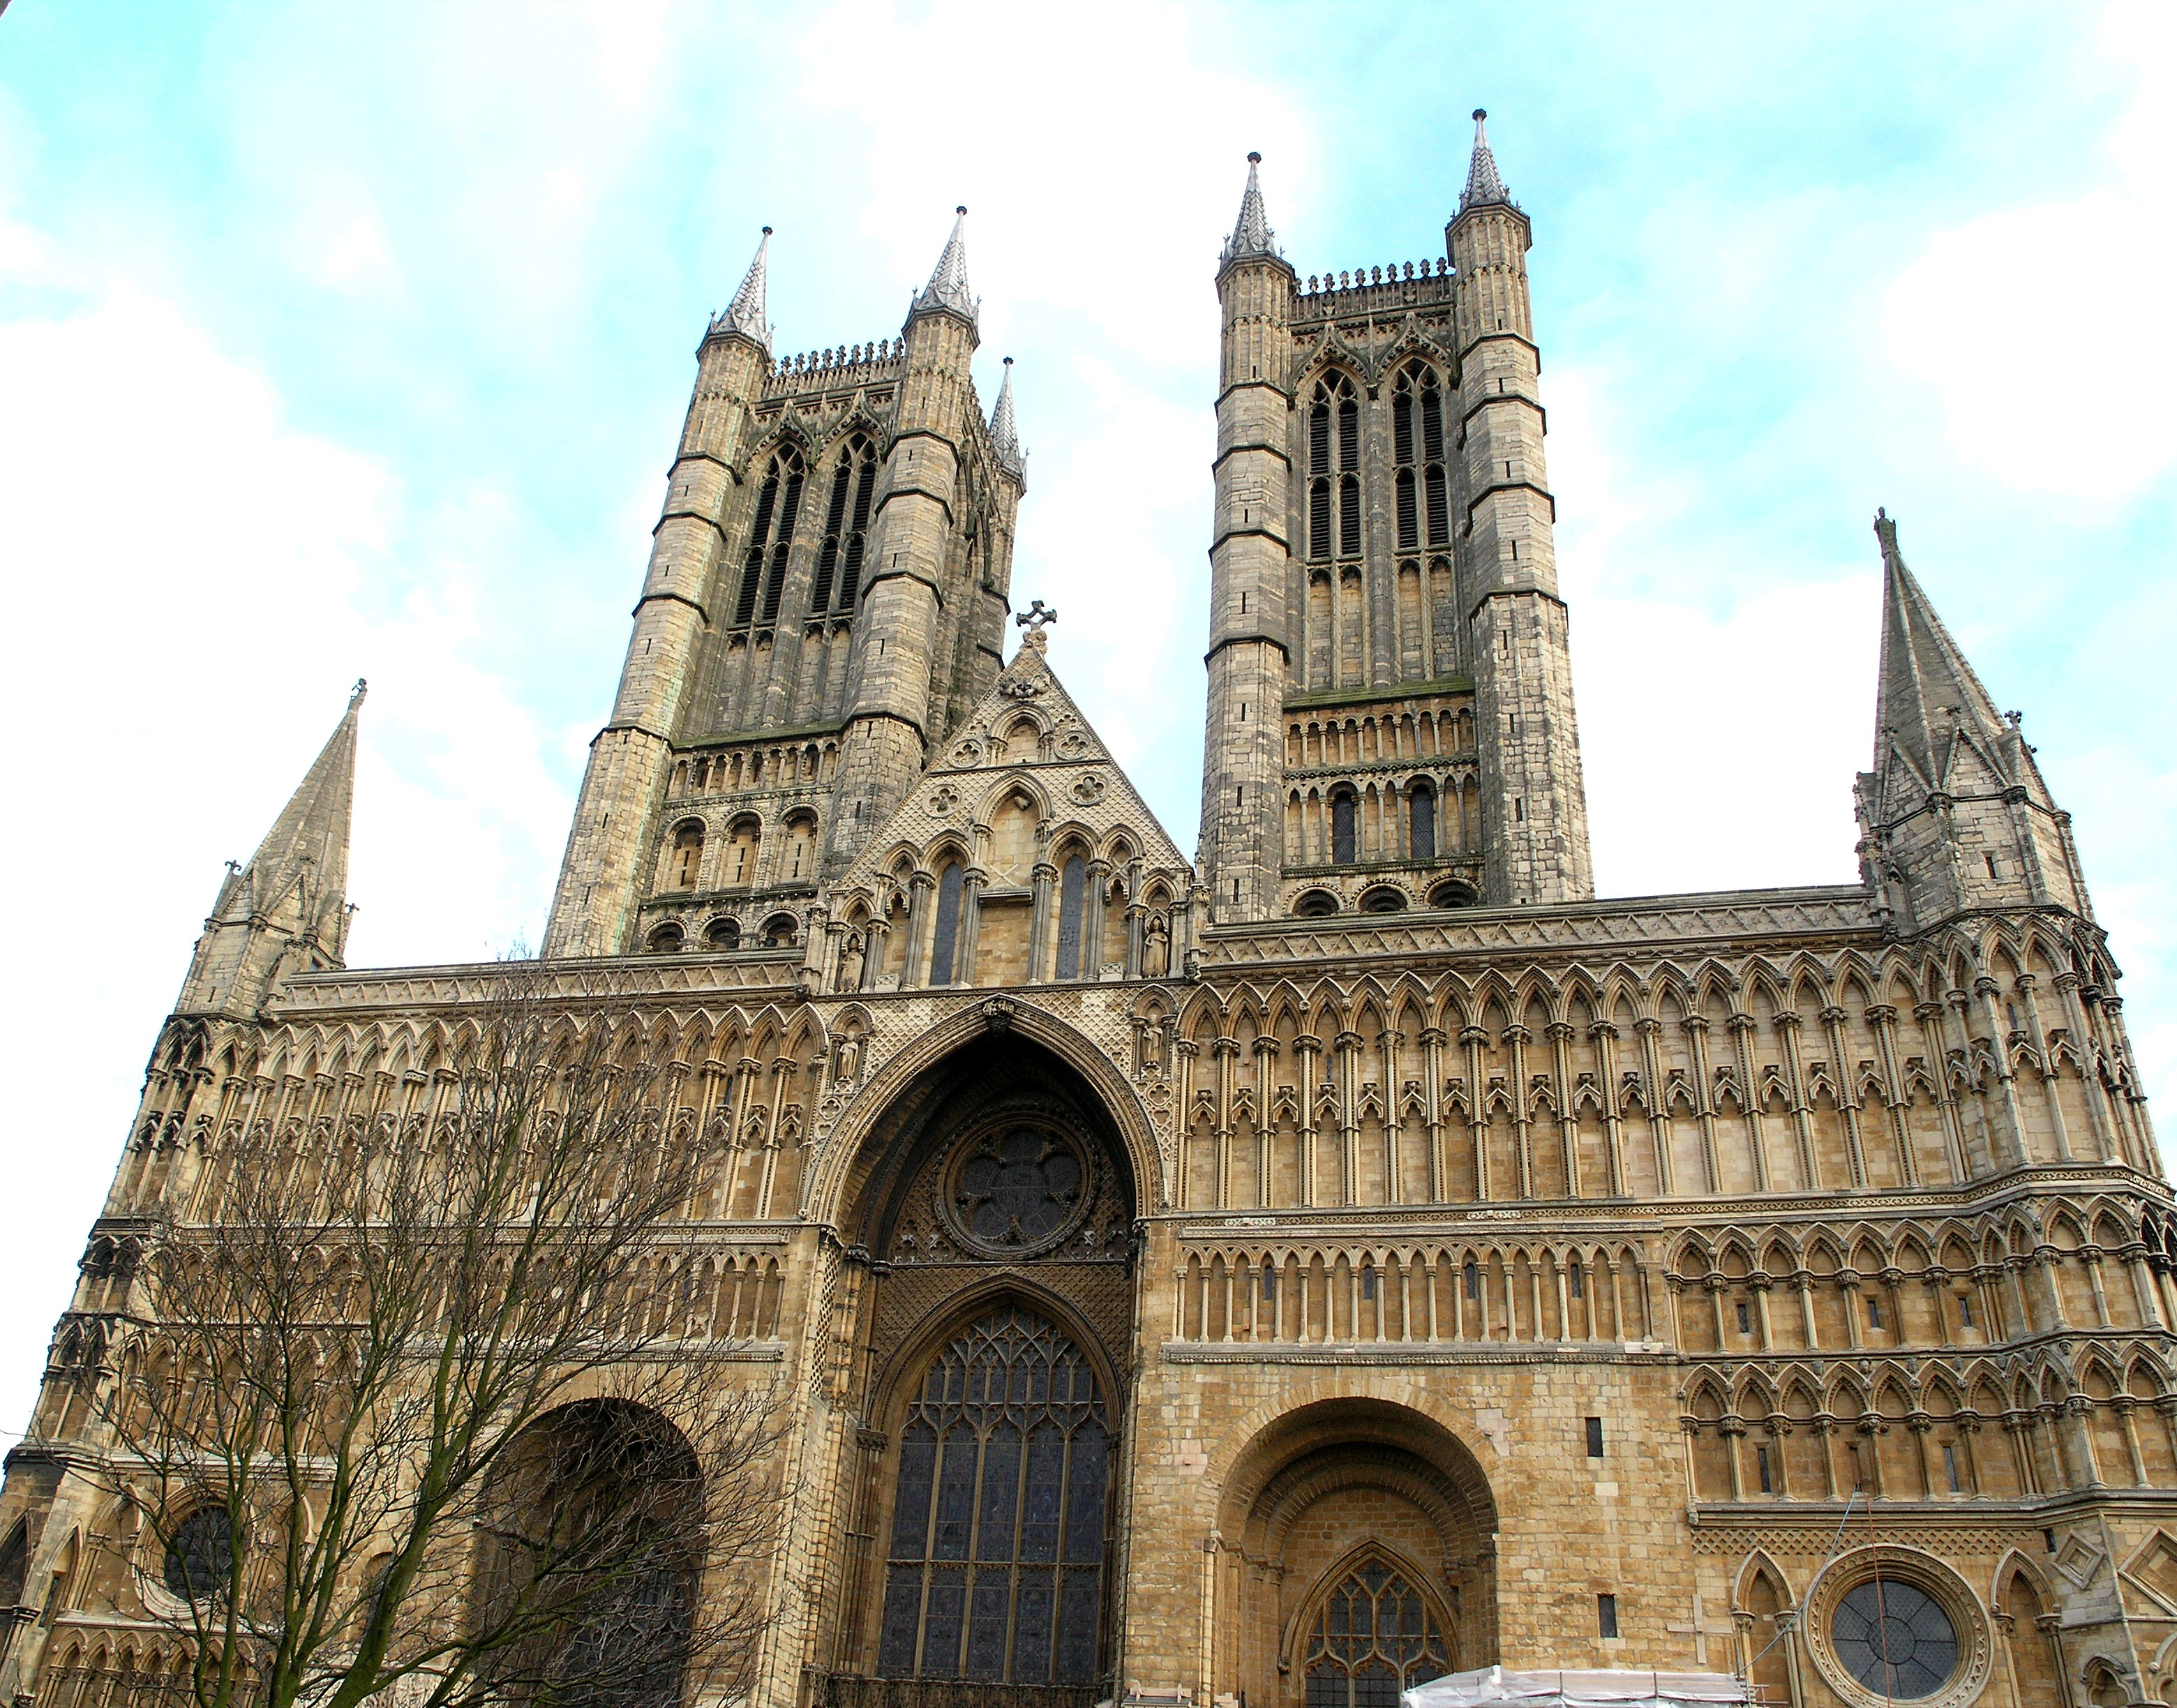 Cathedral of Lincoln